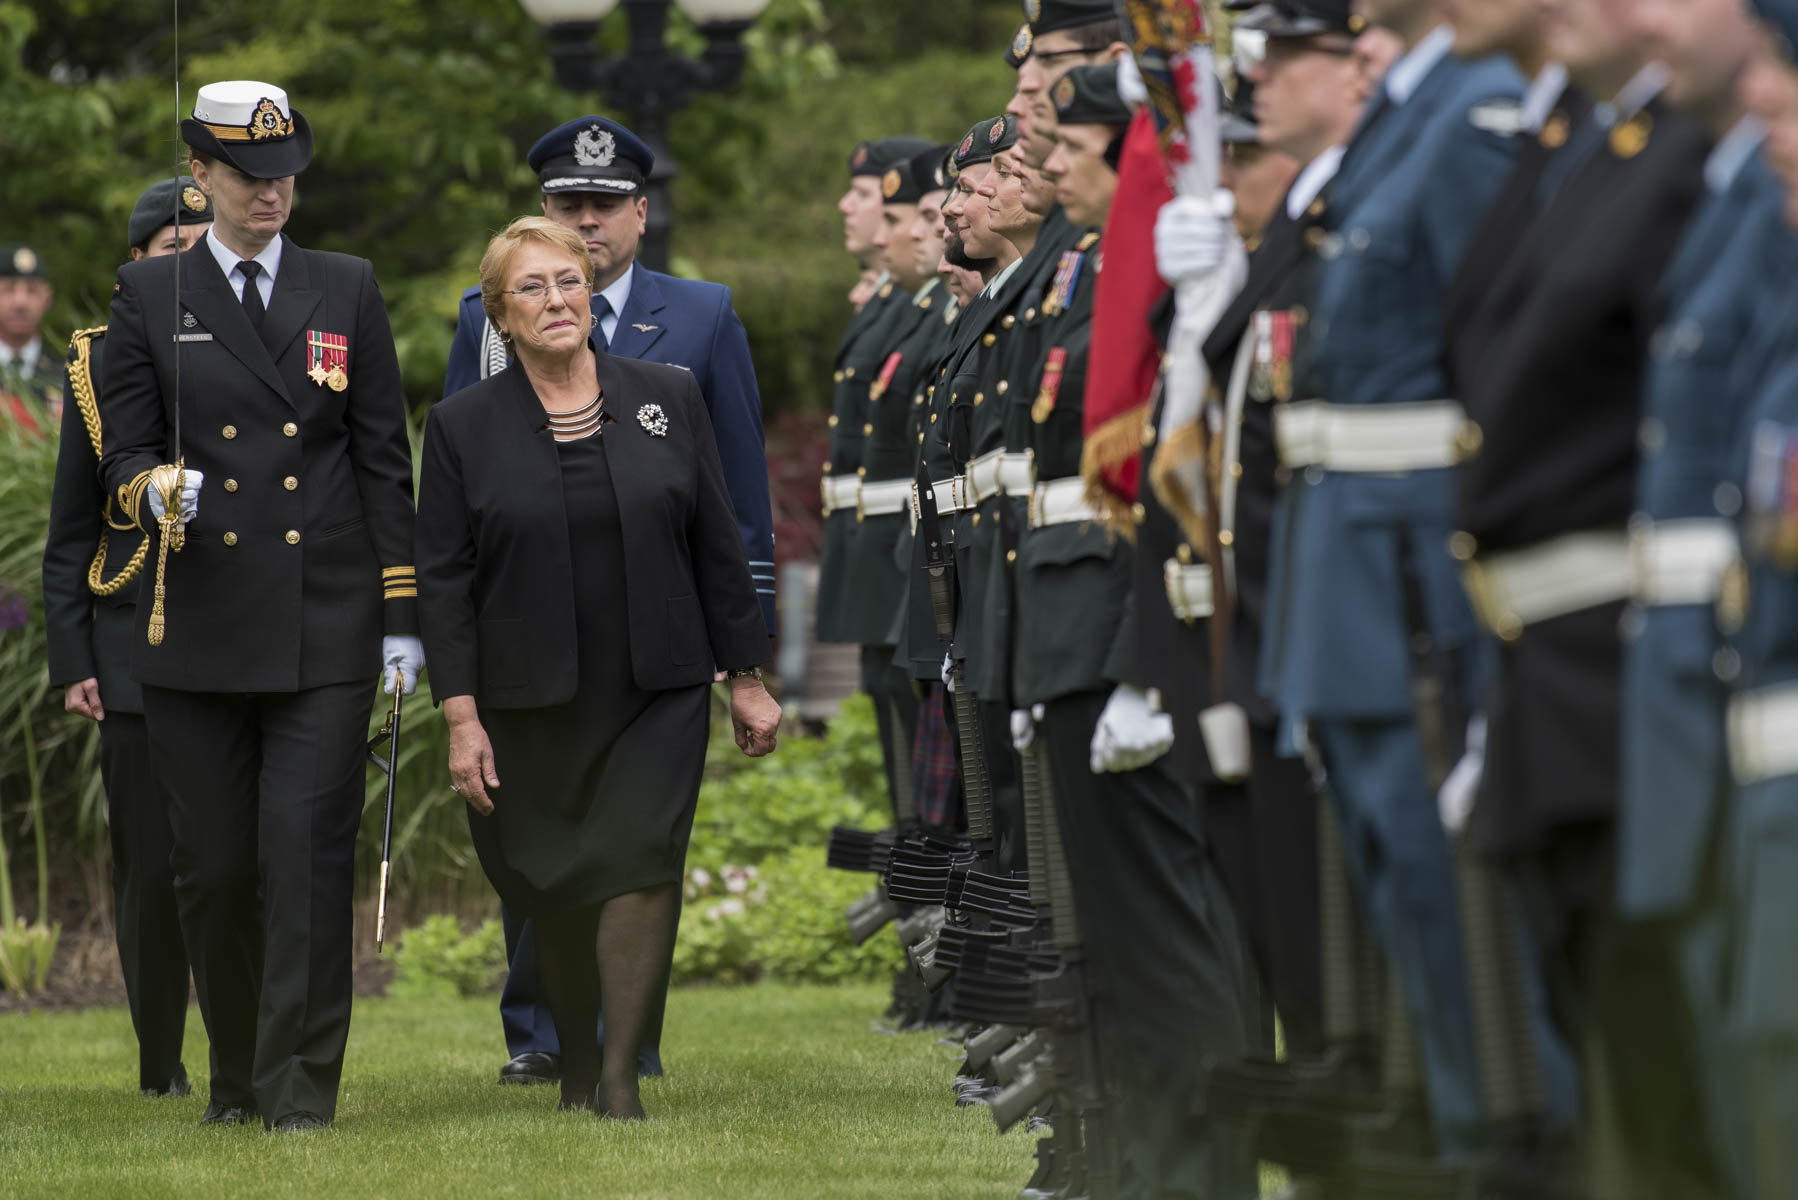 President Bachelet inspected the guard of honour.